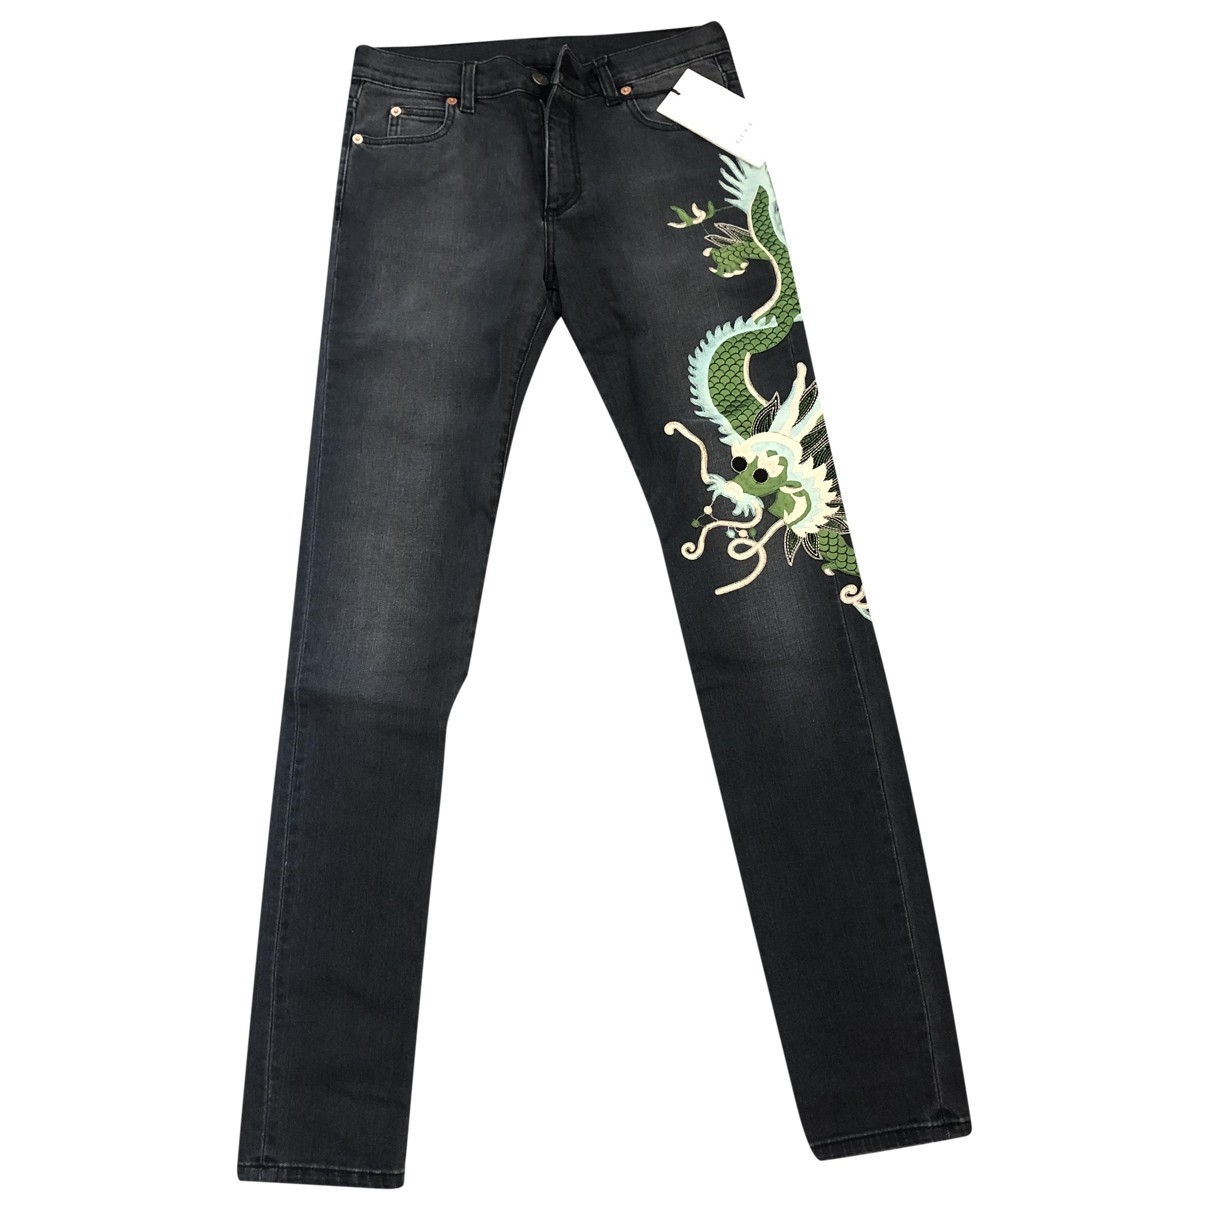 Gucci \N Black Cotton - elasthane Jeans for Women 25 US